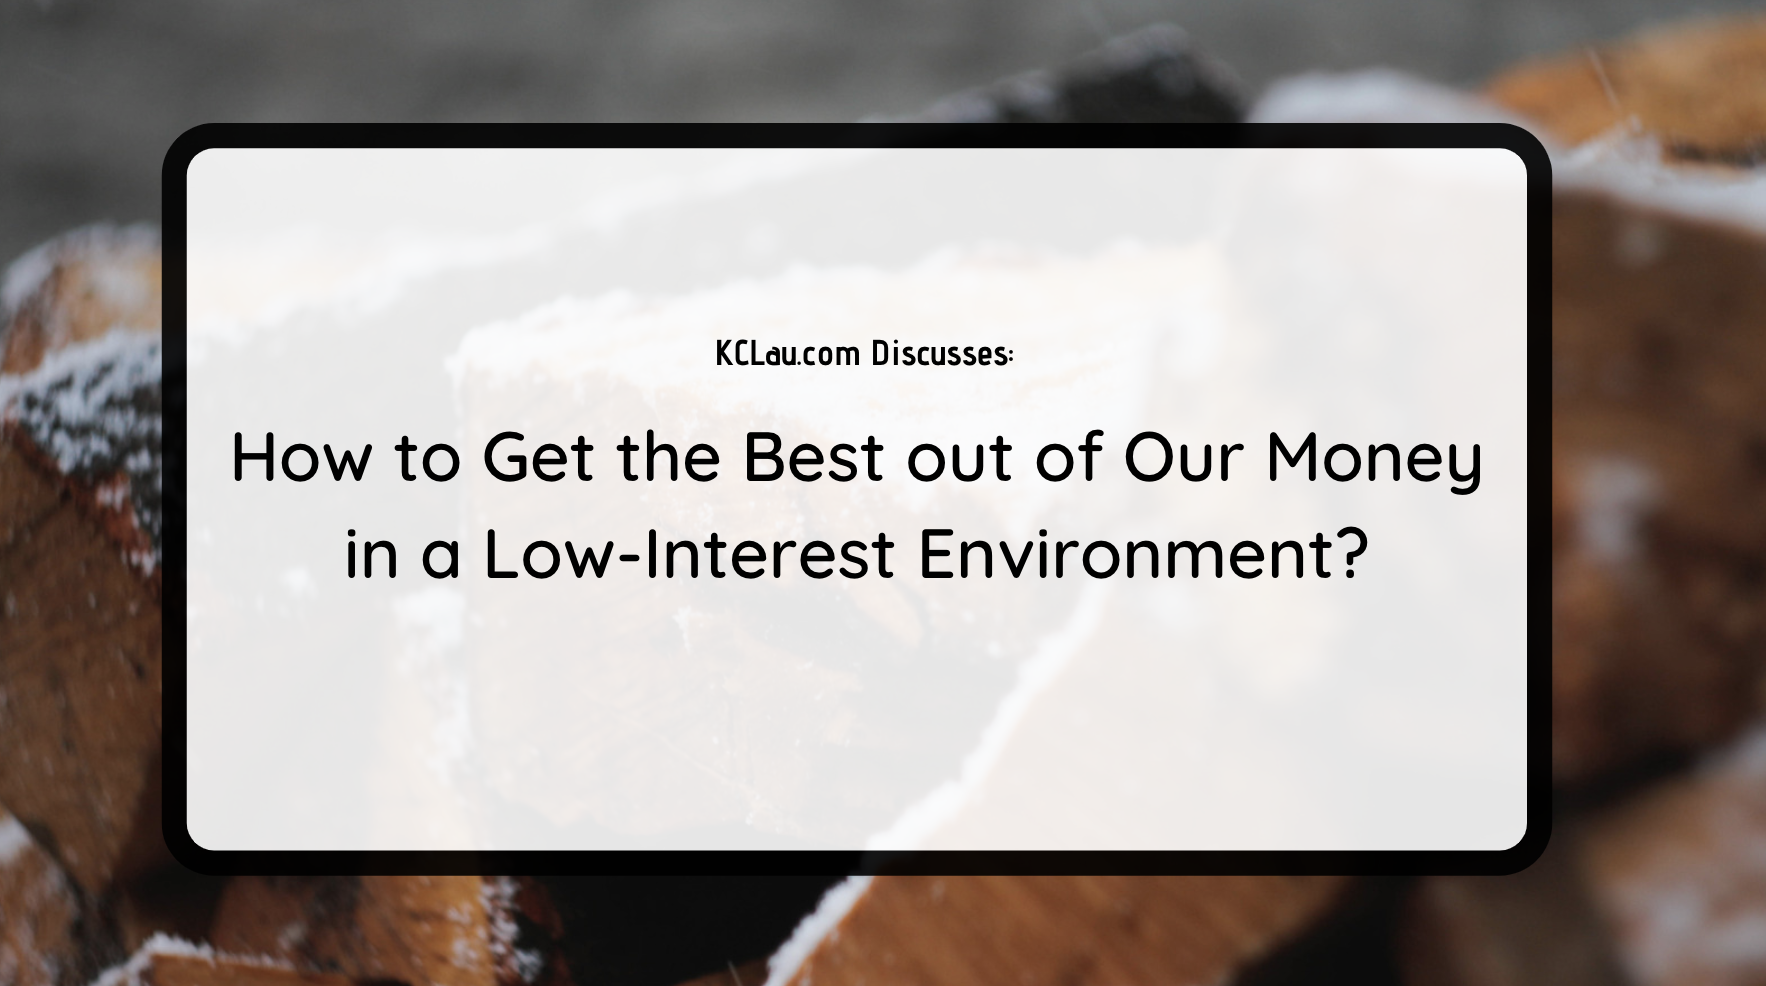 How to Get the Best out of Our Money in a Low-Interest Environment?